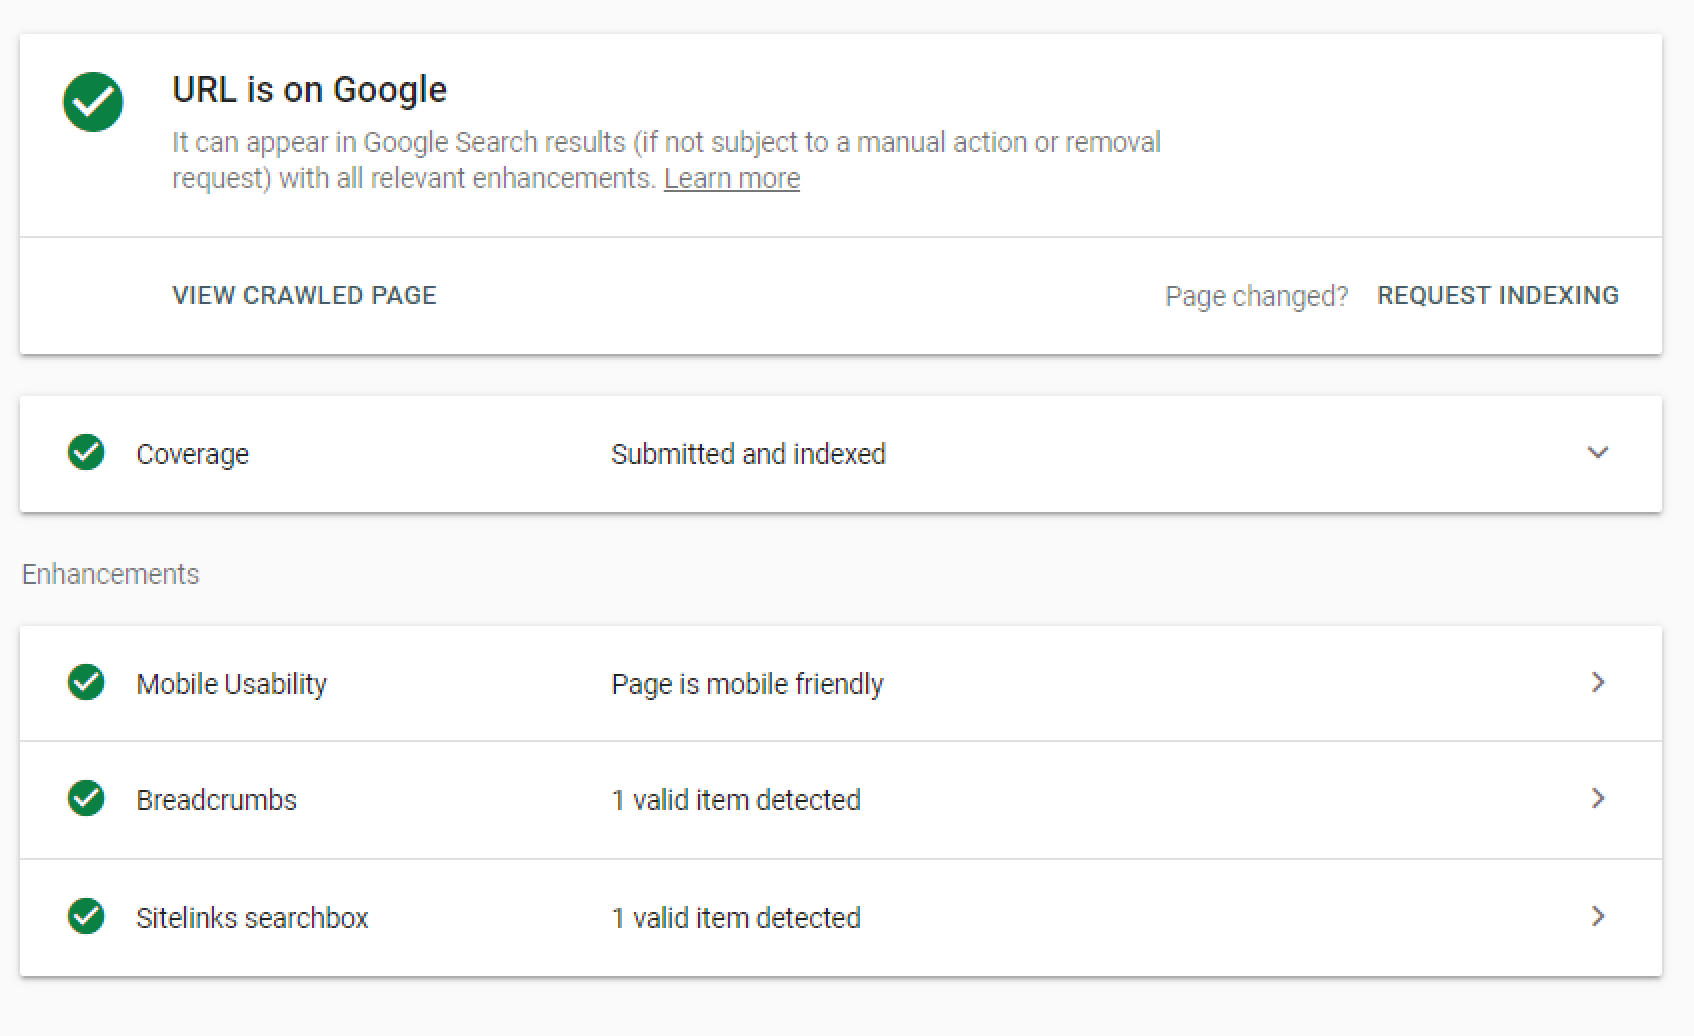 The Google Search Console inspection tool can be used to request indexing